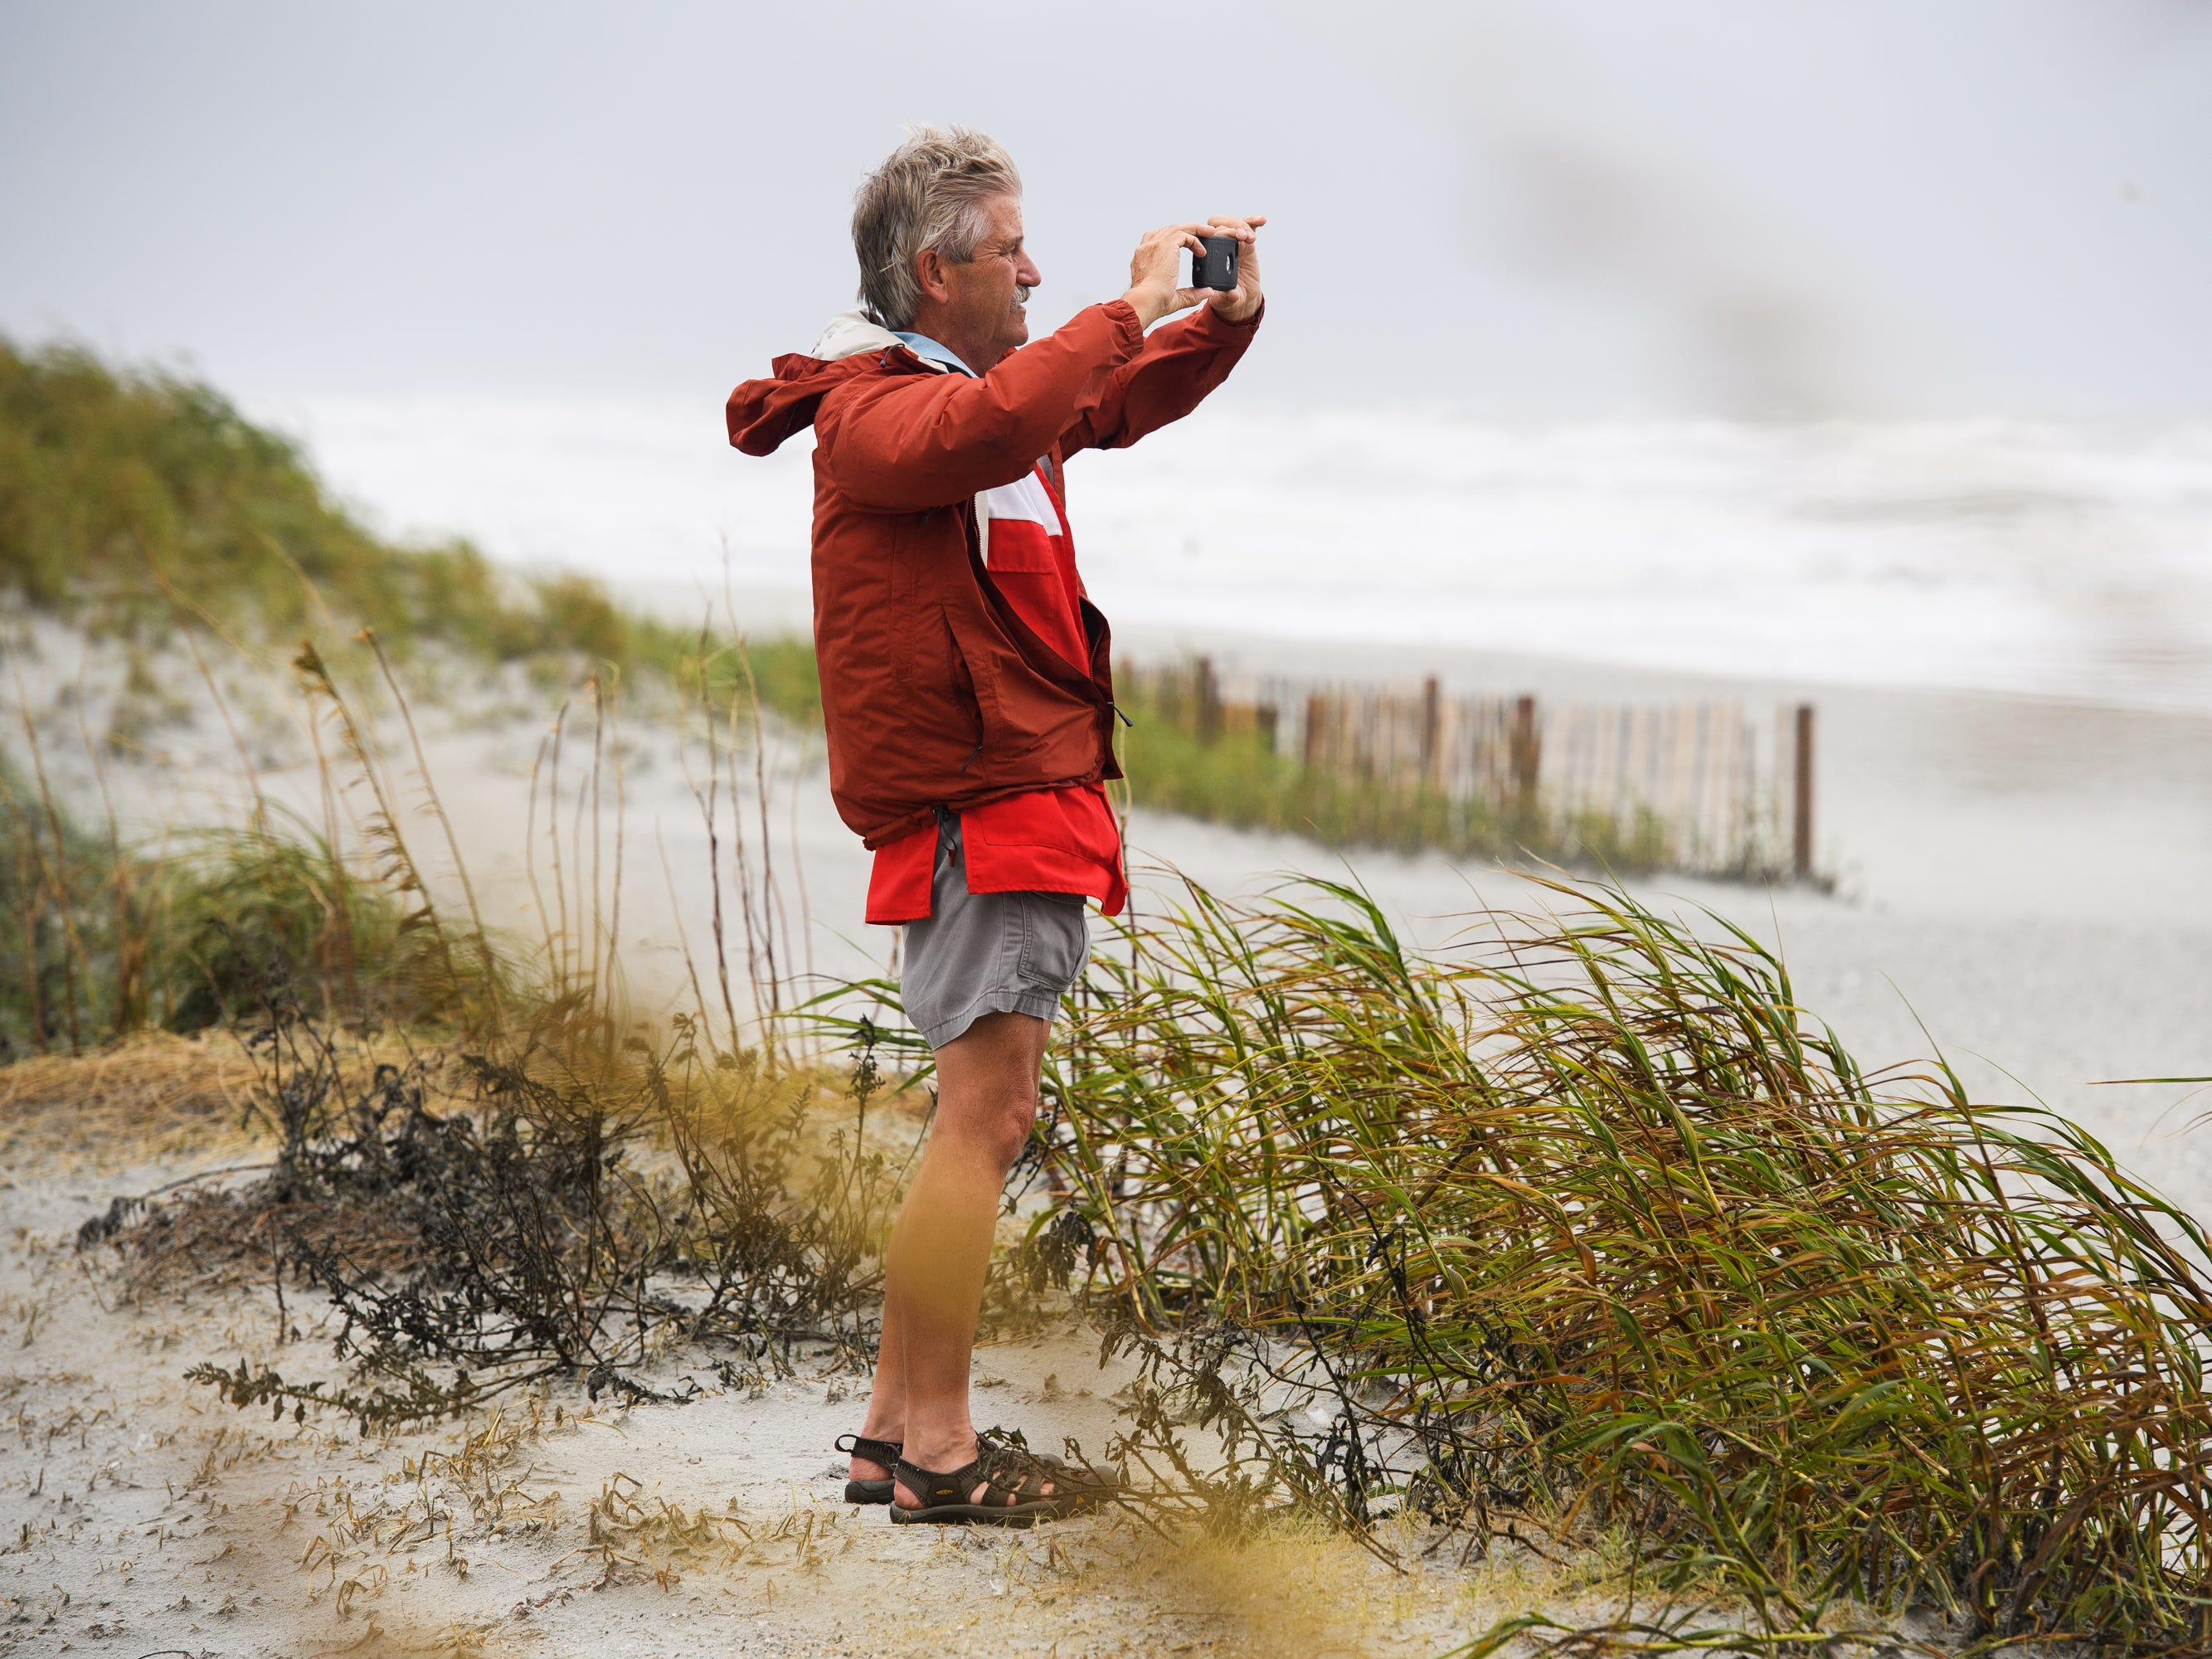 Chuck Billing, a volunteer with the Red Cross, takes a photo at the beach while the tide begins to rise in North Myrtle Beach on Saturday, Sept. 15, 2018.